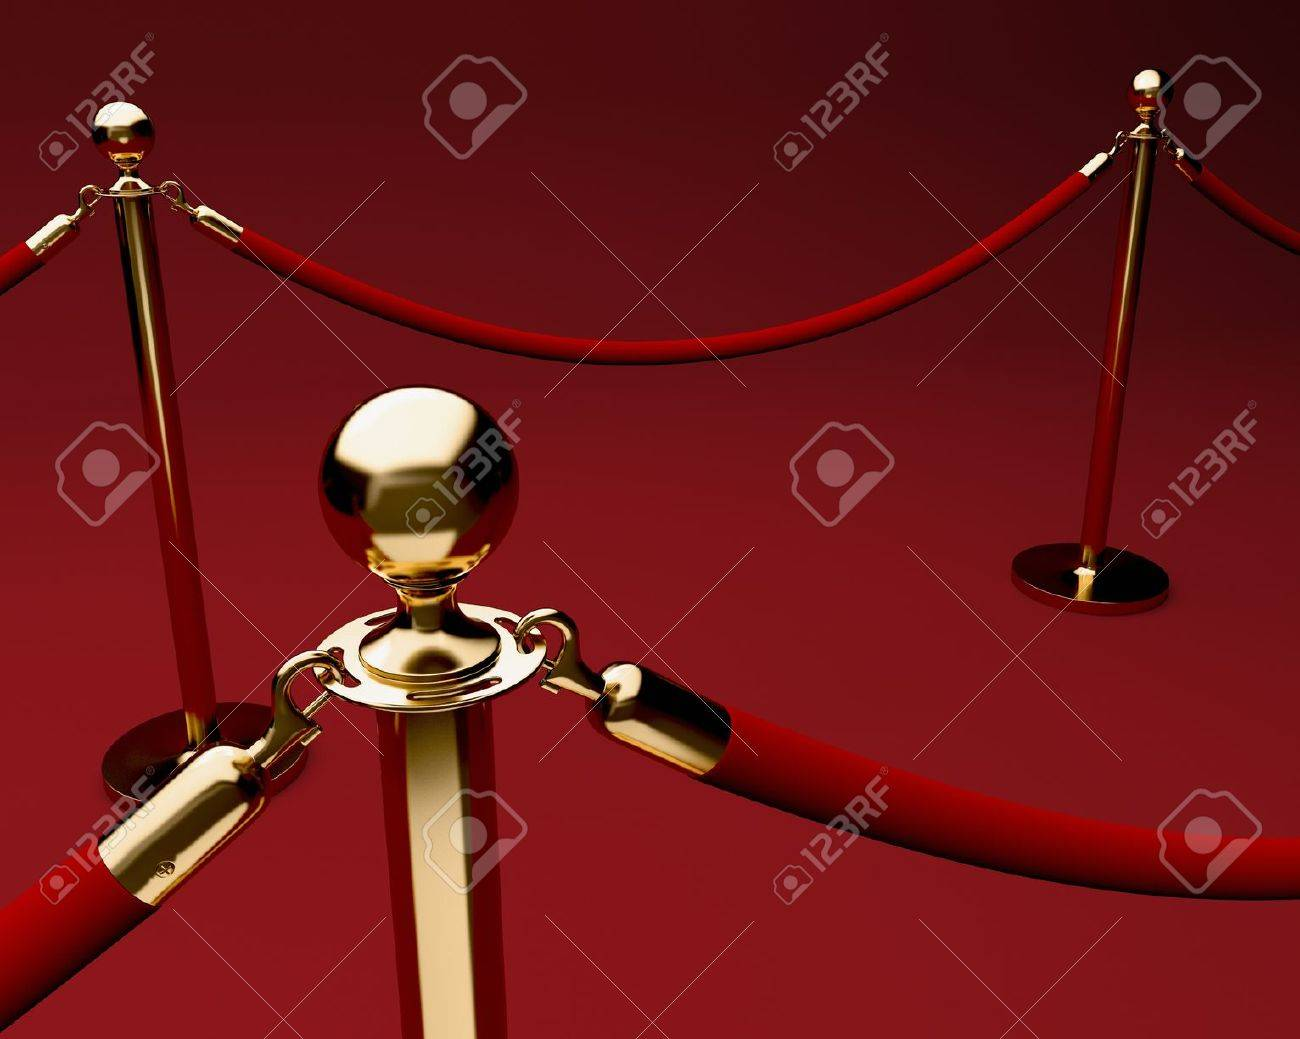 Red carpet with velvet rope barrier and shiny brass stanchions Stock Photo - 8774922